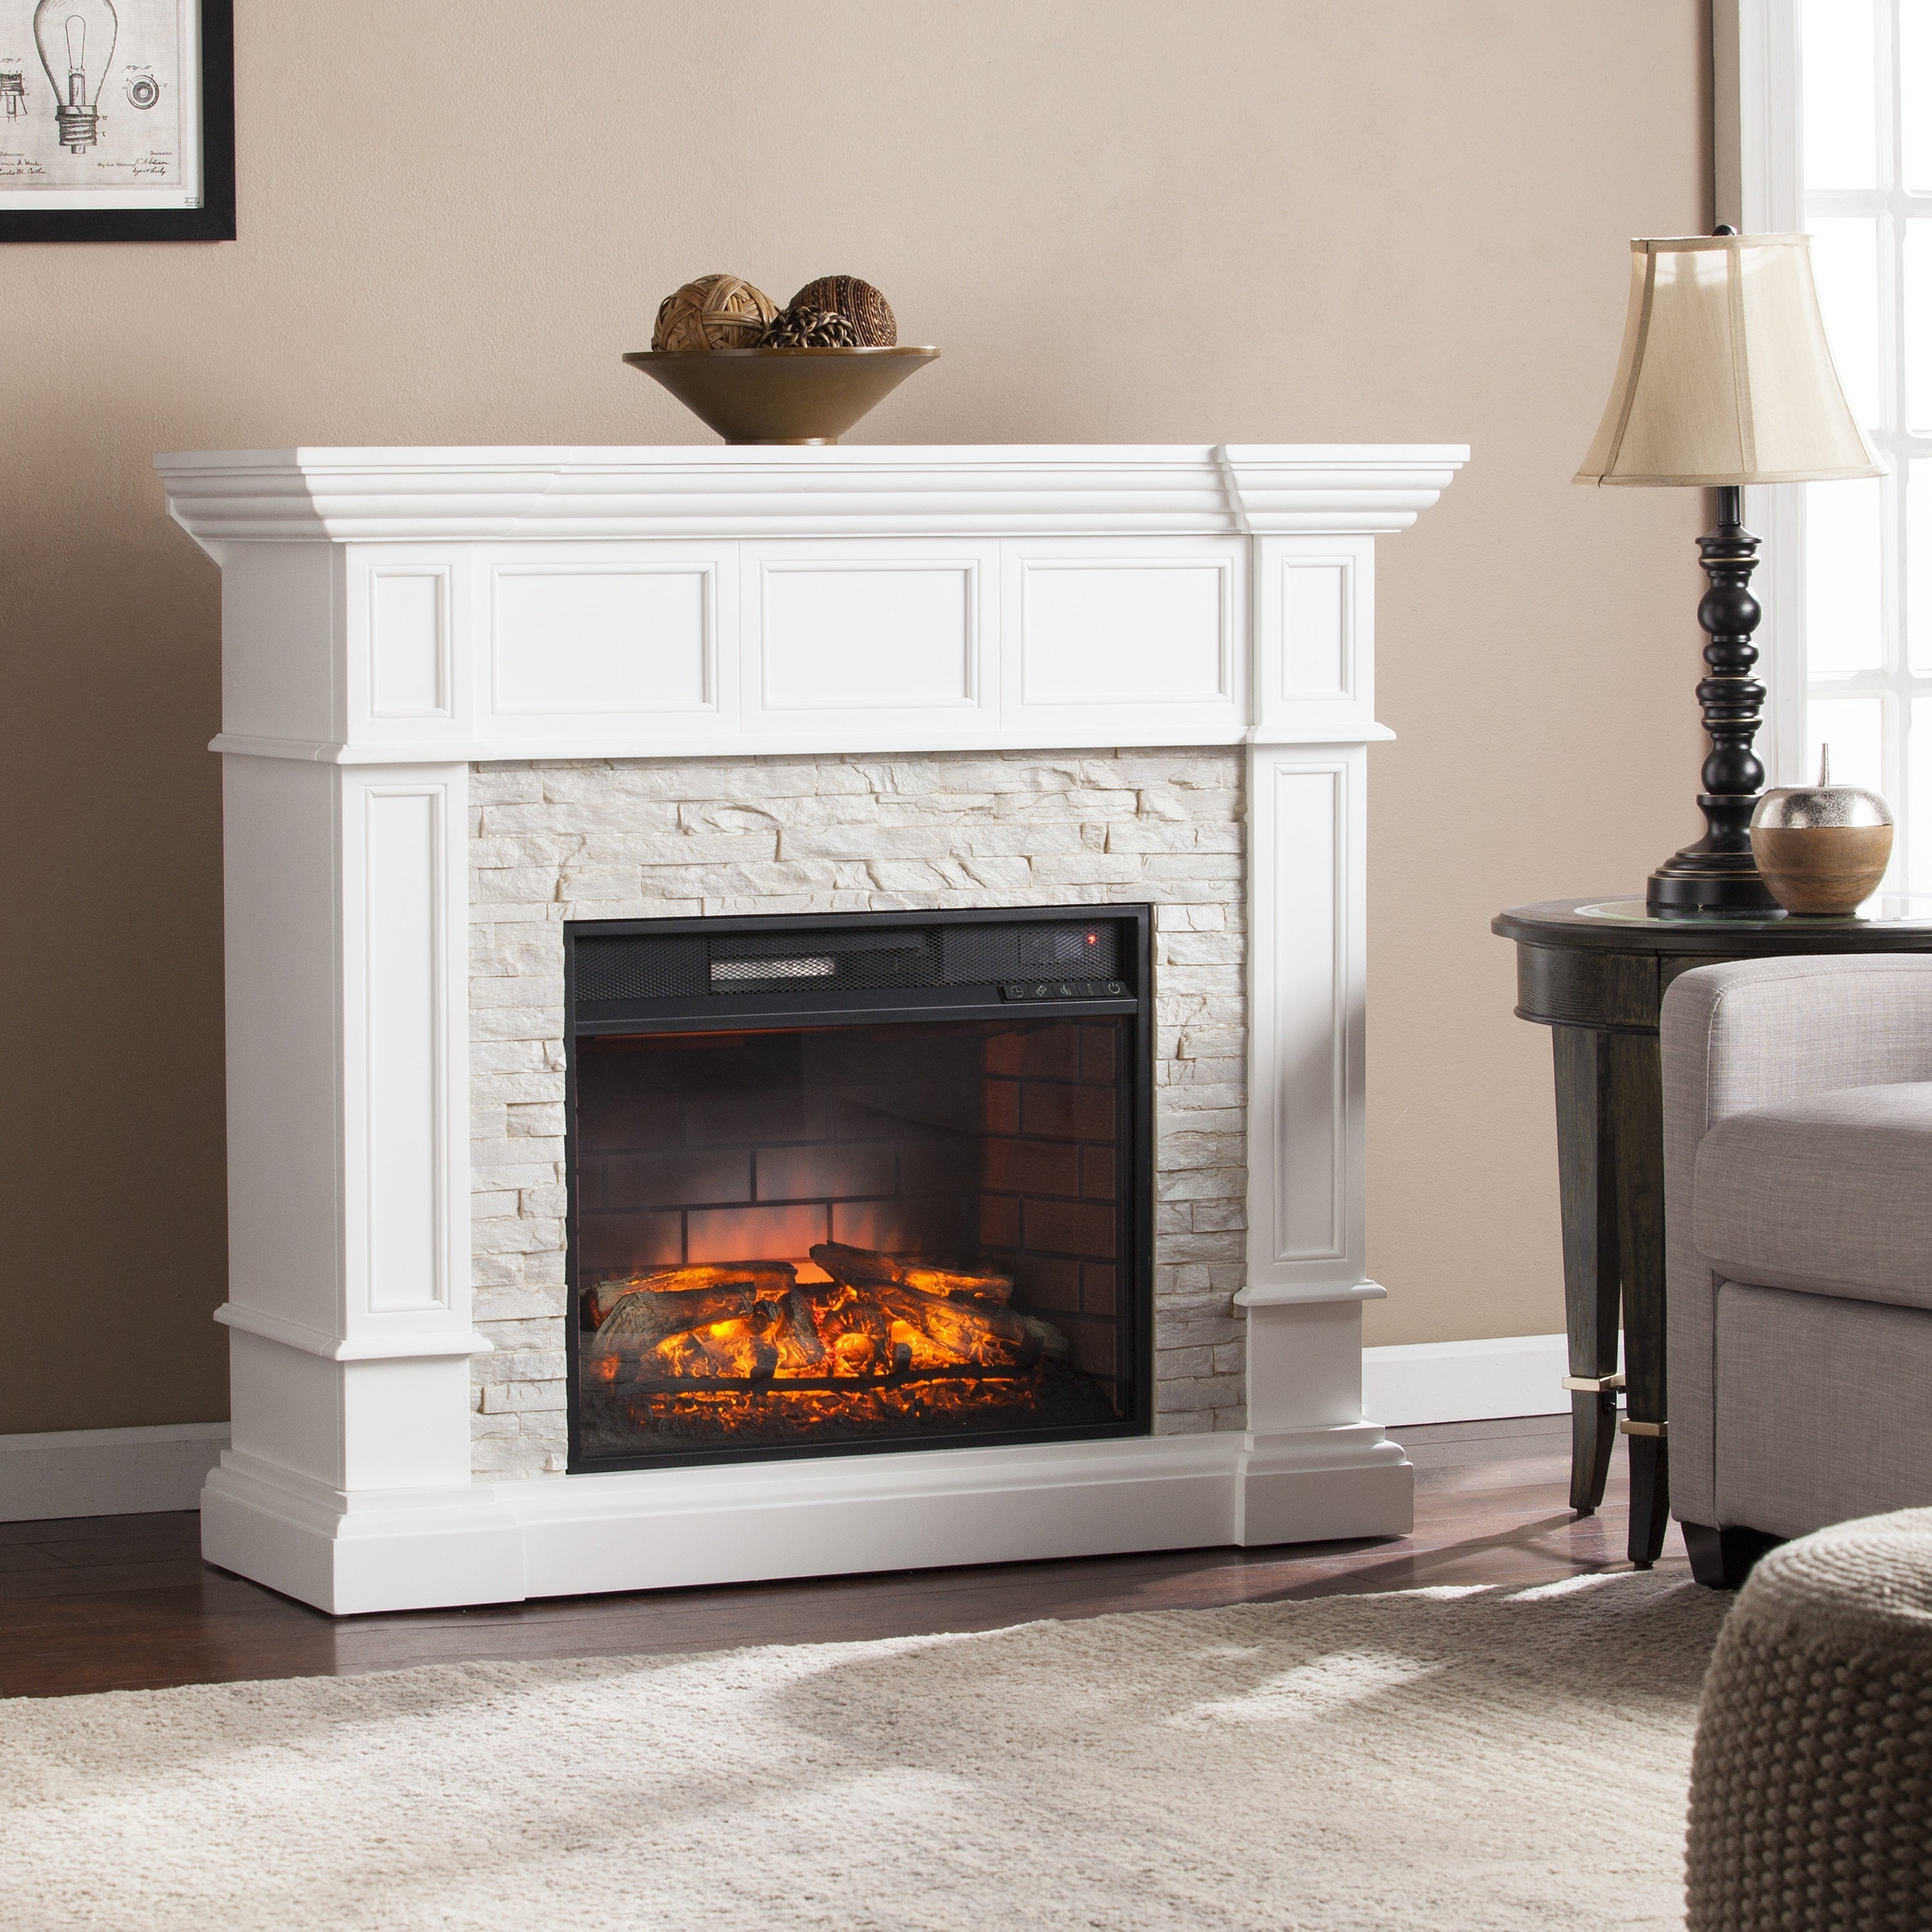 me insert coryc electric fireplaces flush efficient energy fireplace are